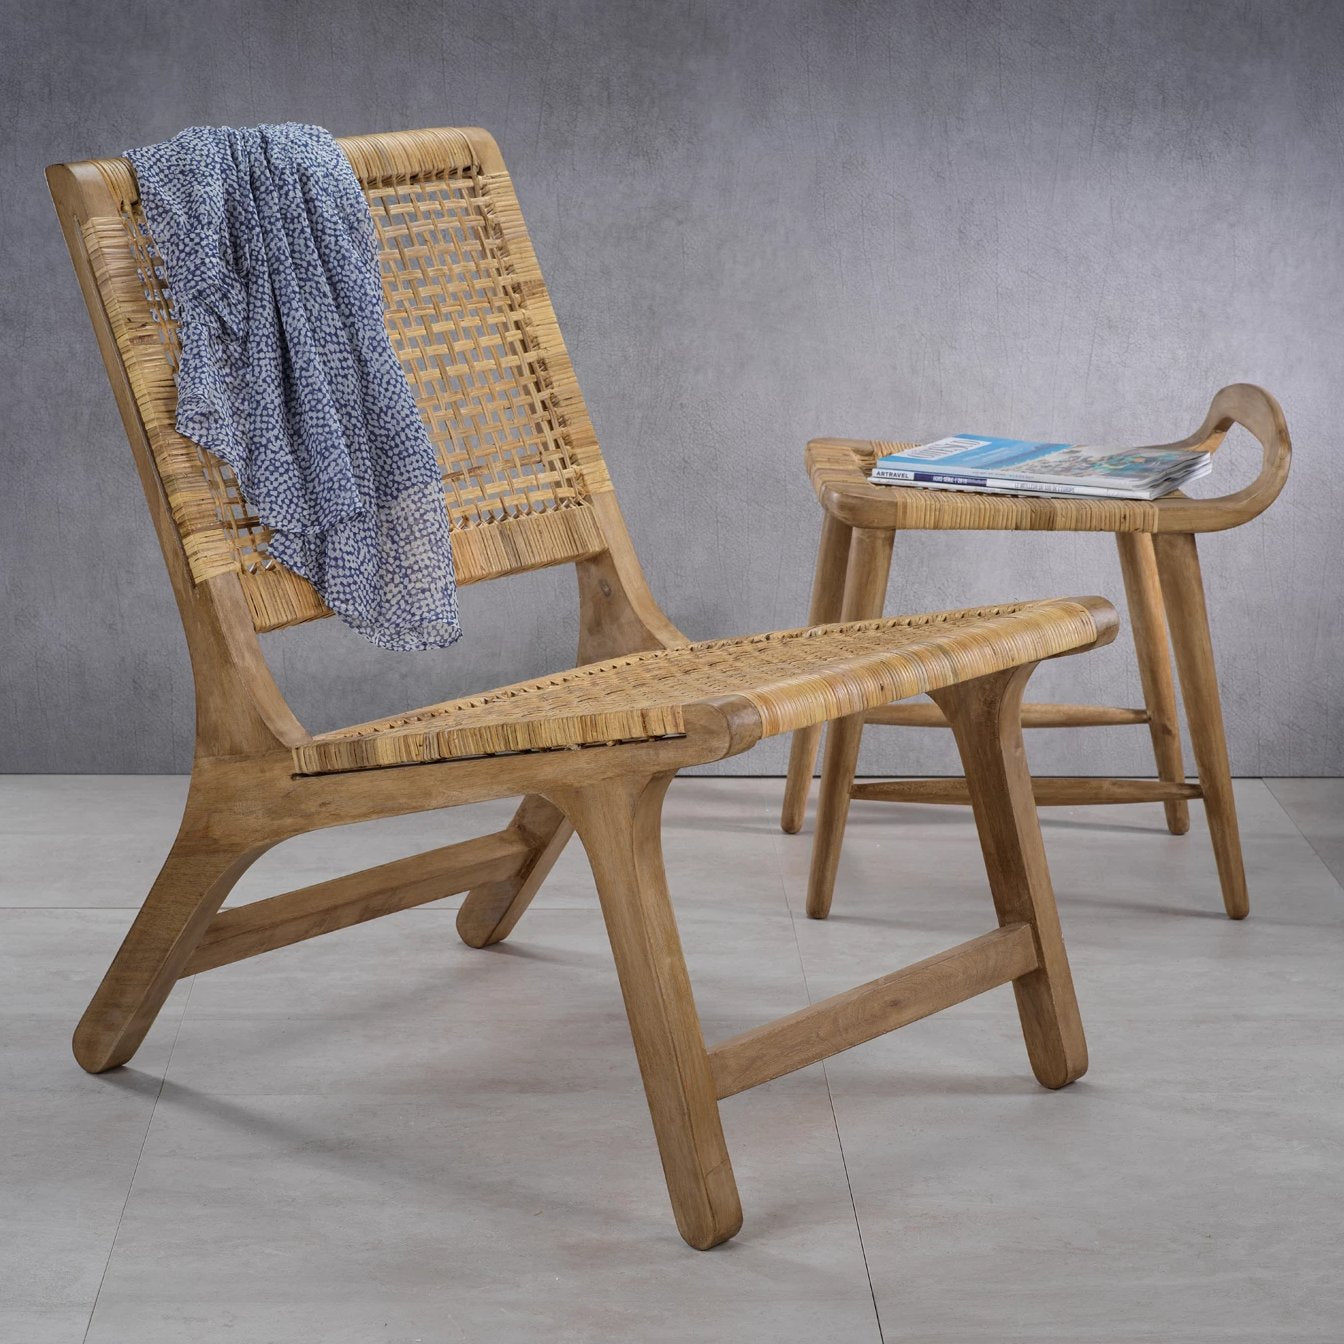 Sand River Mango Wood & Cane Chair - CARLYLE AVENUE